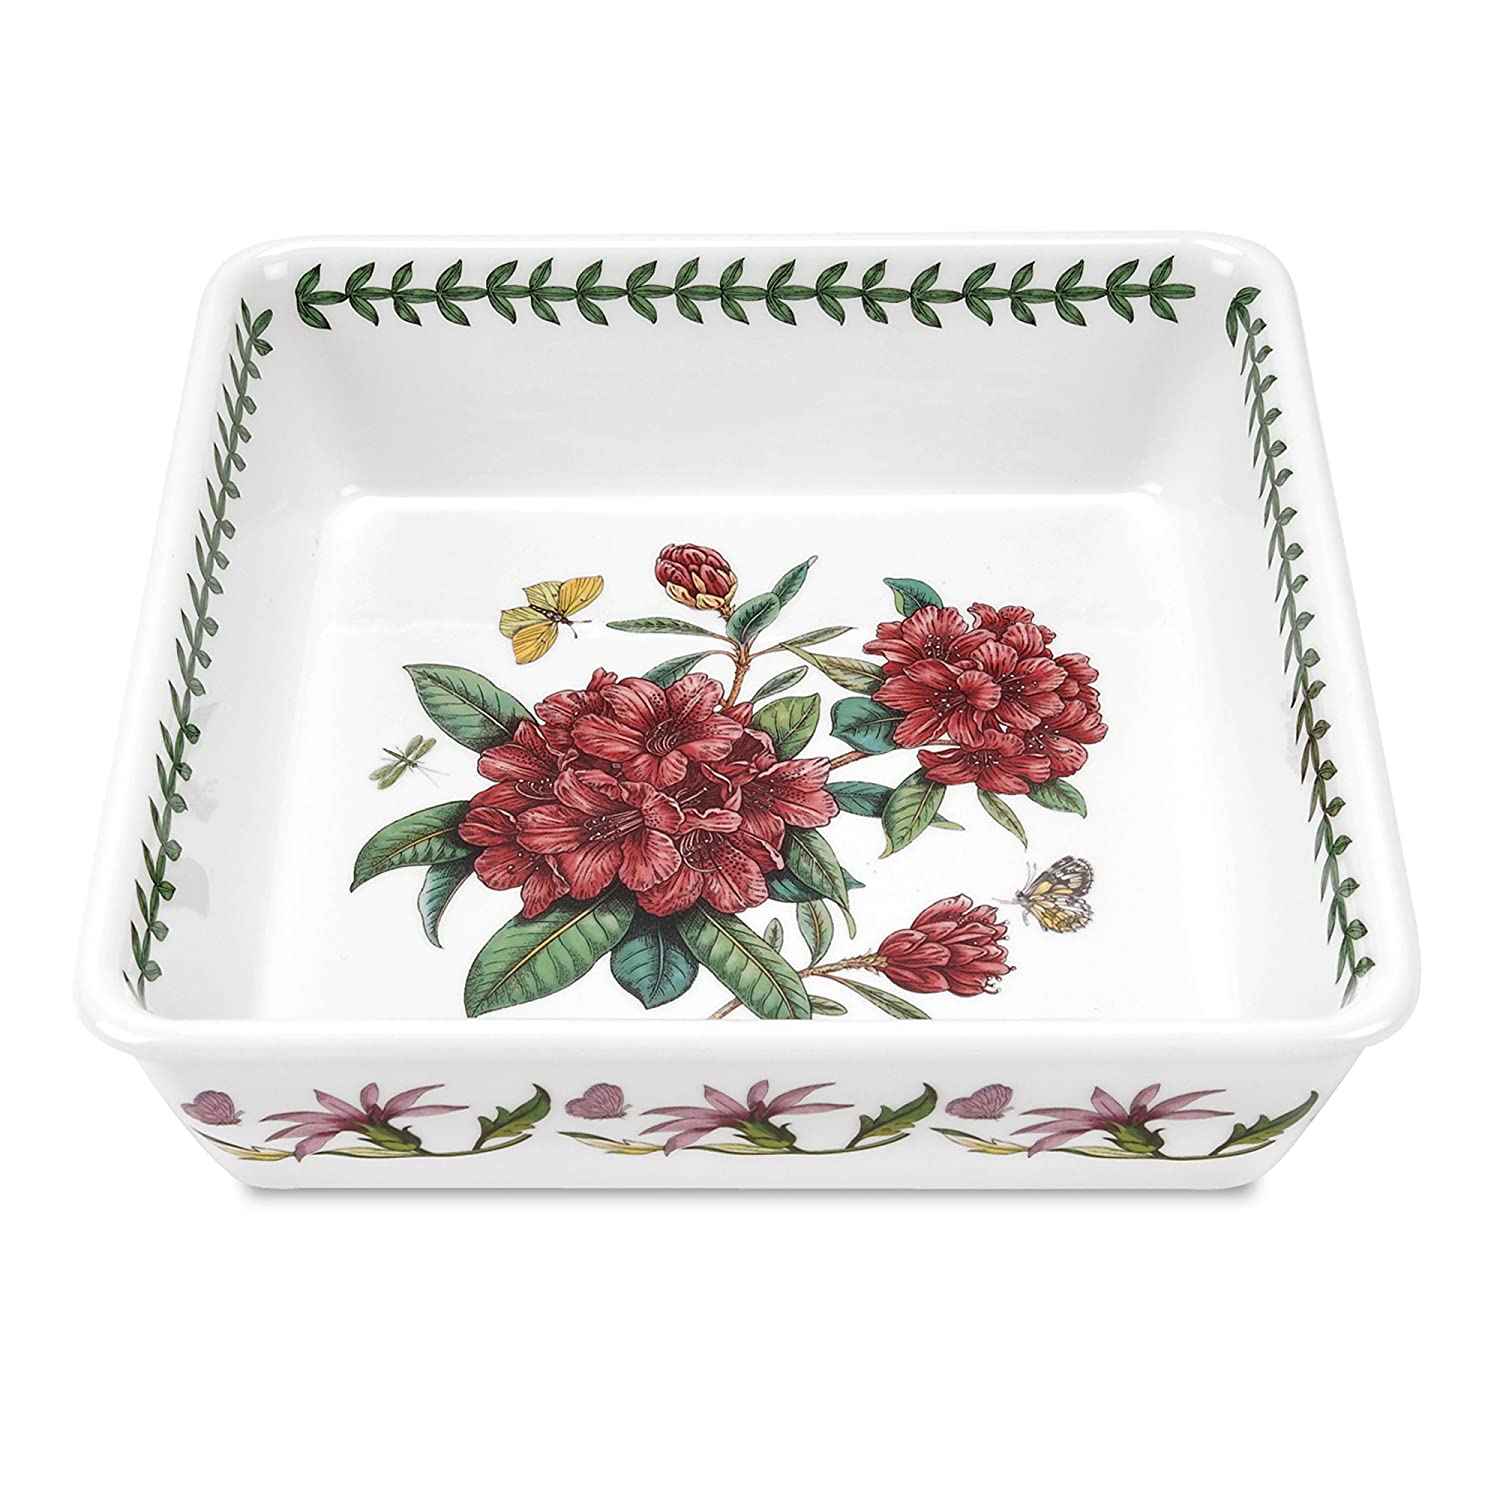 Amazon.com Portmeirion Botanic Garden Square Dish Portmeirion Square Baking Dish Kitchen u0026 Dining  sc 1 st  Amazon.com & Amazon.com: Portmeirion Botanic Garden Square Dish: Portmeirion ...